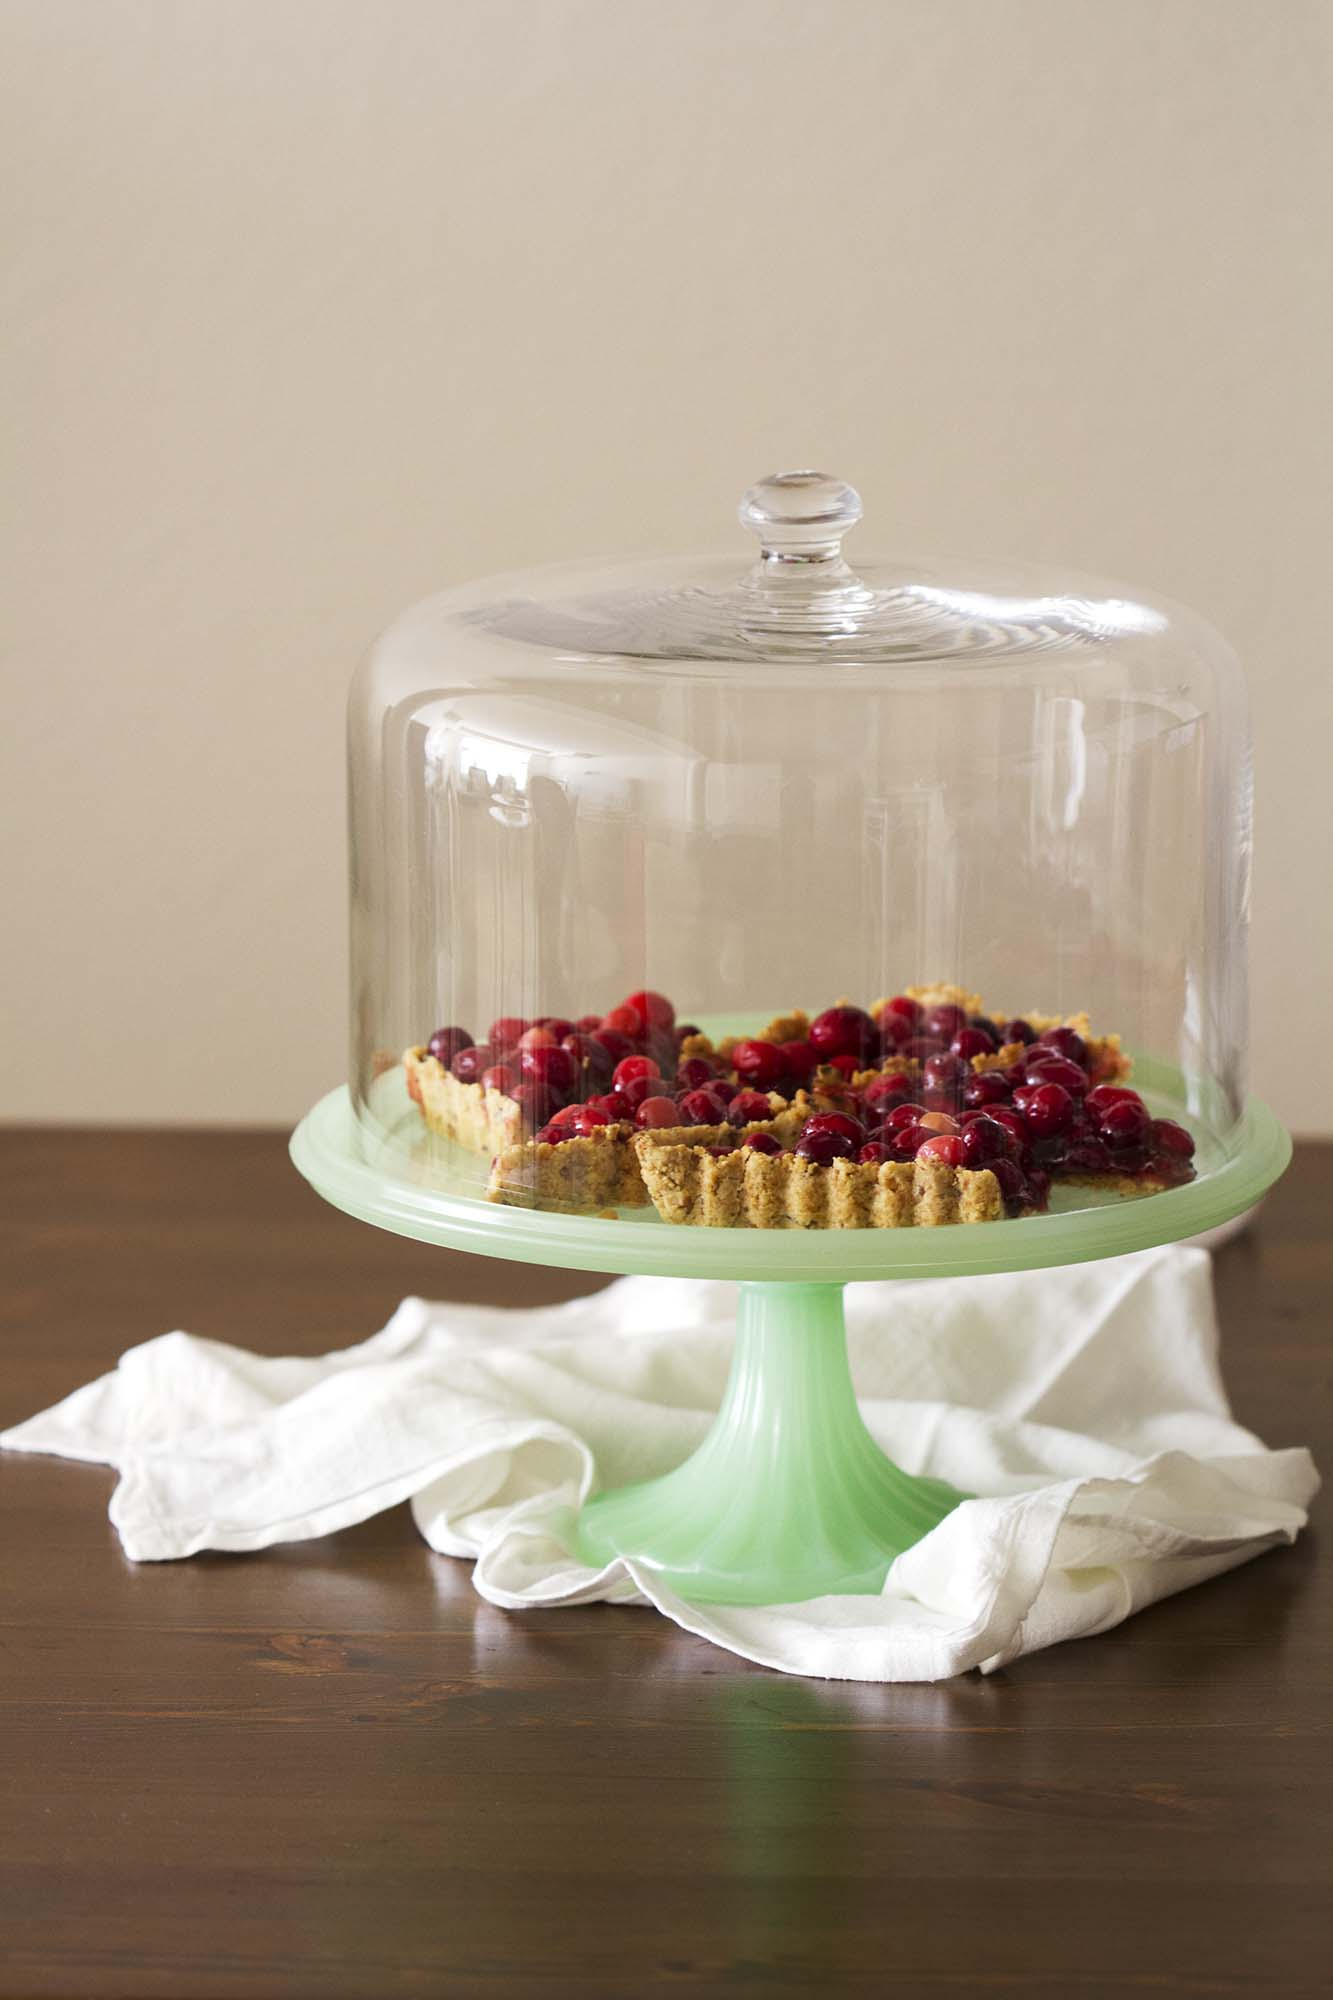 nut crusted cranberry tart on glass covered cake stand